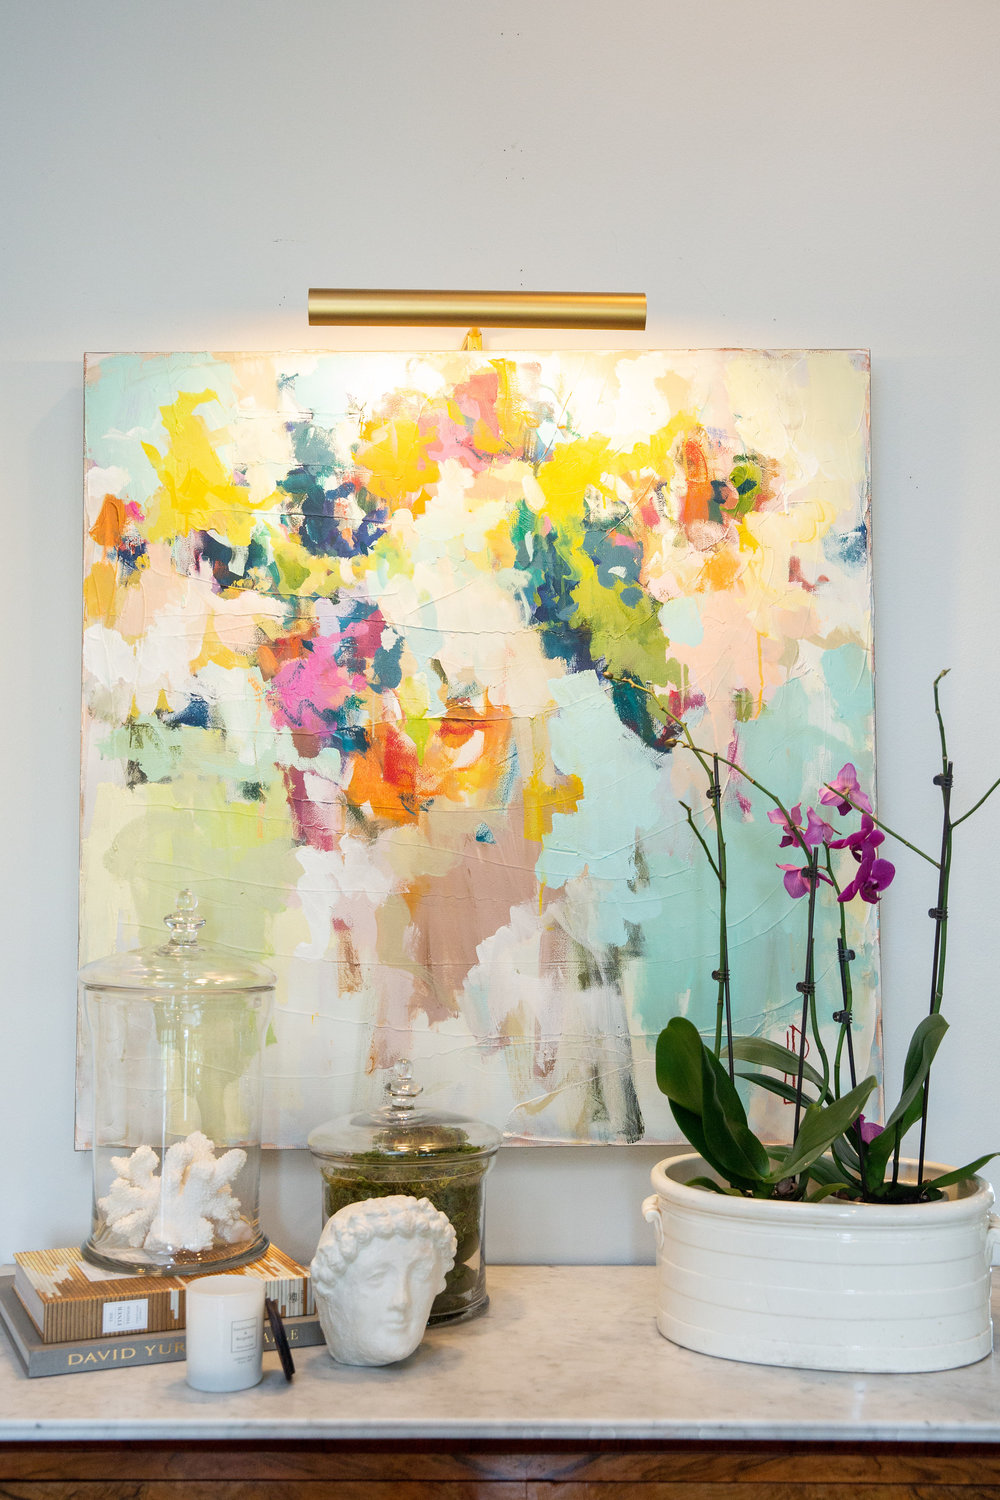 Lauri and Storm worked together on finding just the right piece to compliment an eclectic, color-loving style. This piece was commissioned from a local artist.